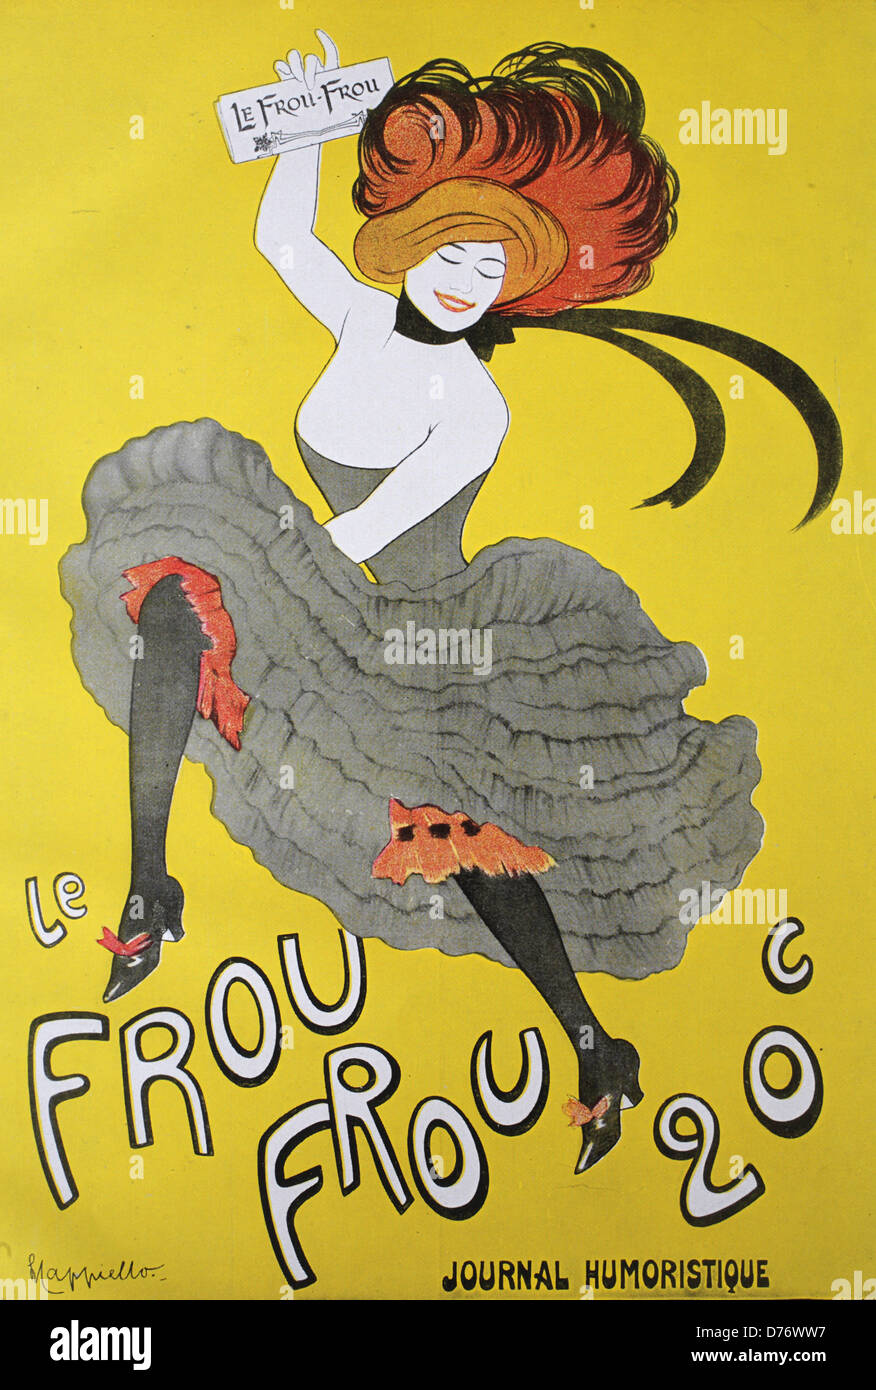 Historic advertising poster for the French newspaper 'Frou - Frou' by Capiello, circa 1880 - Stock Image